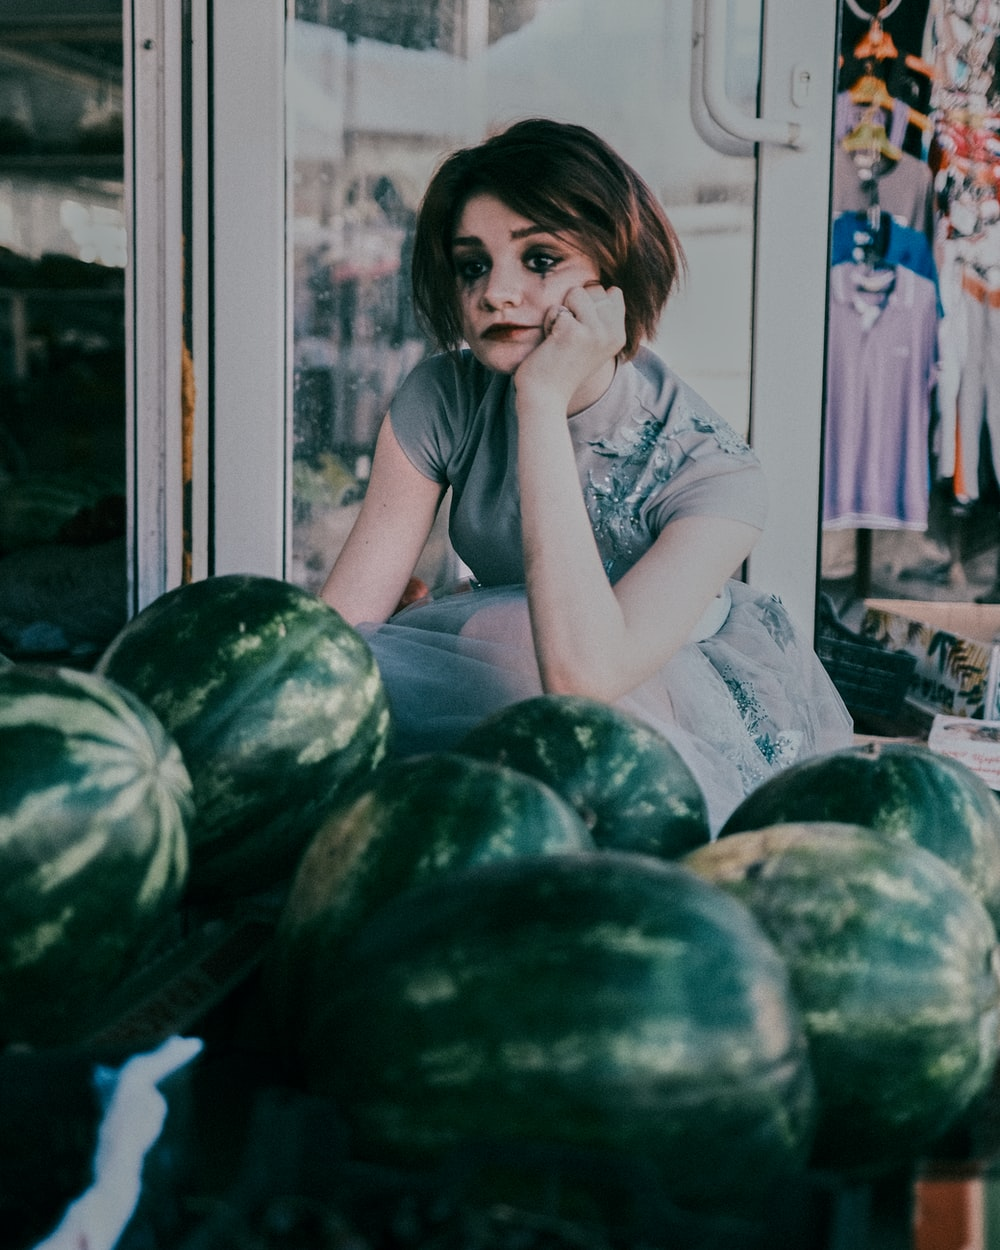 woman in white shirt sitting on green watermelon